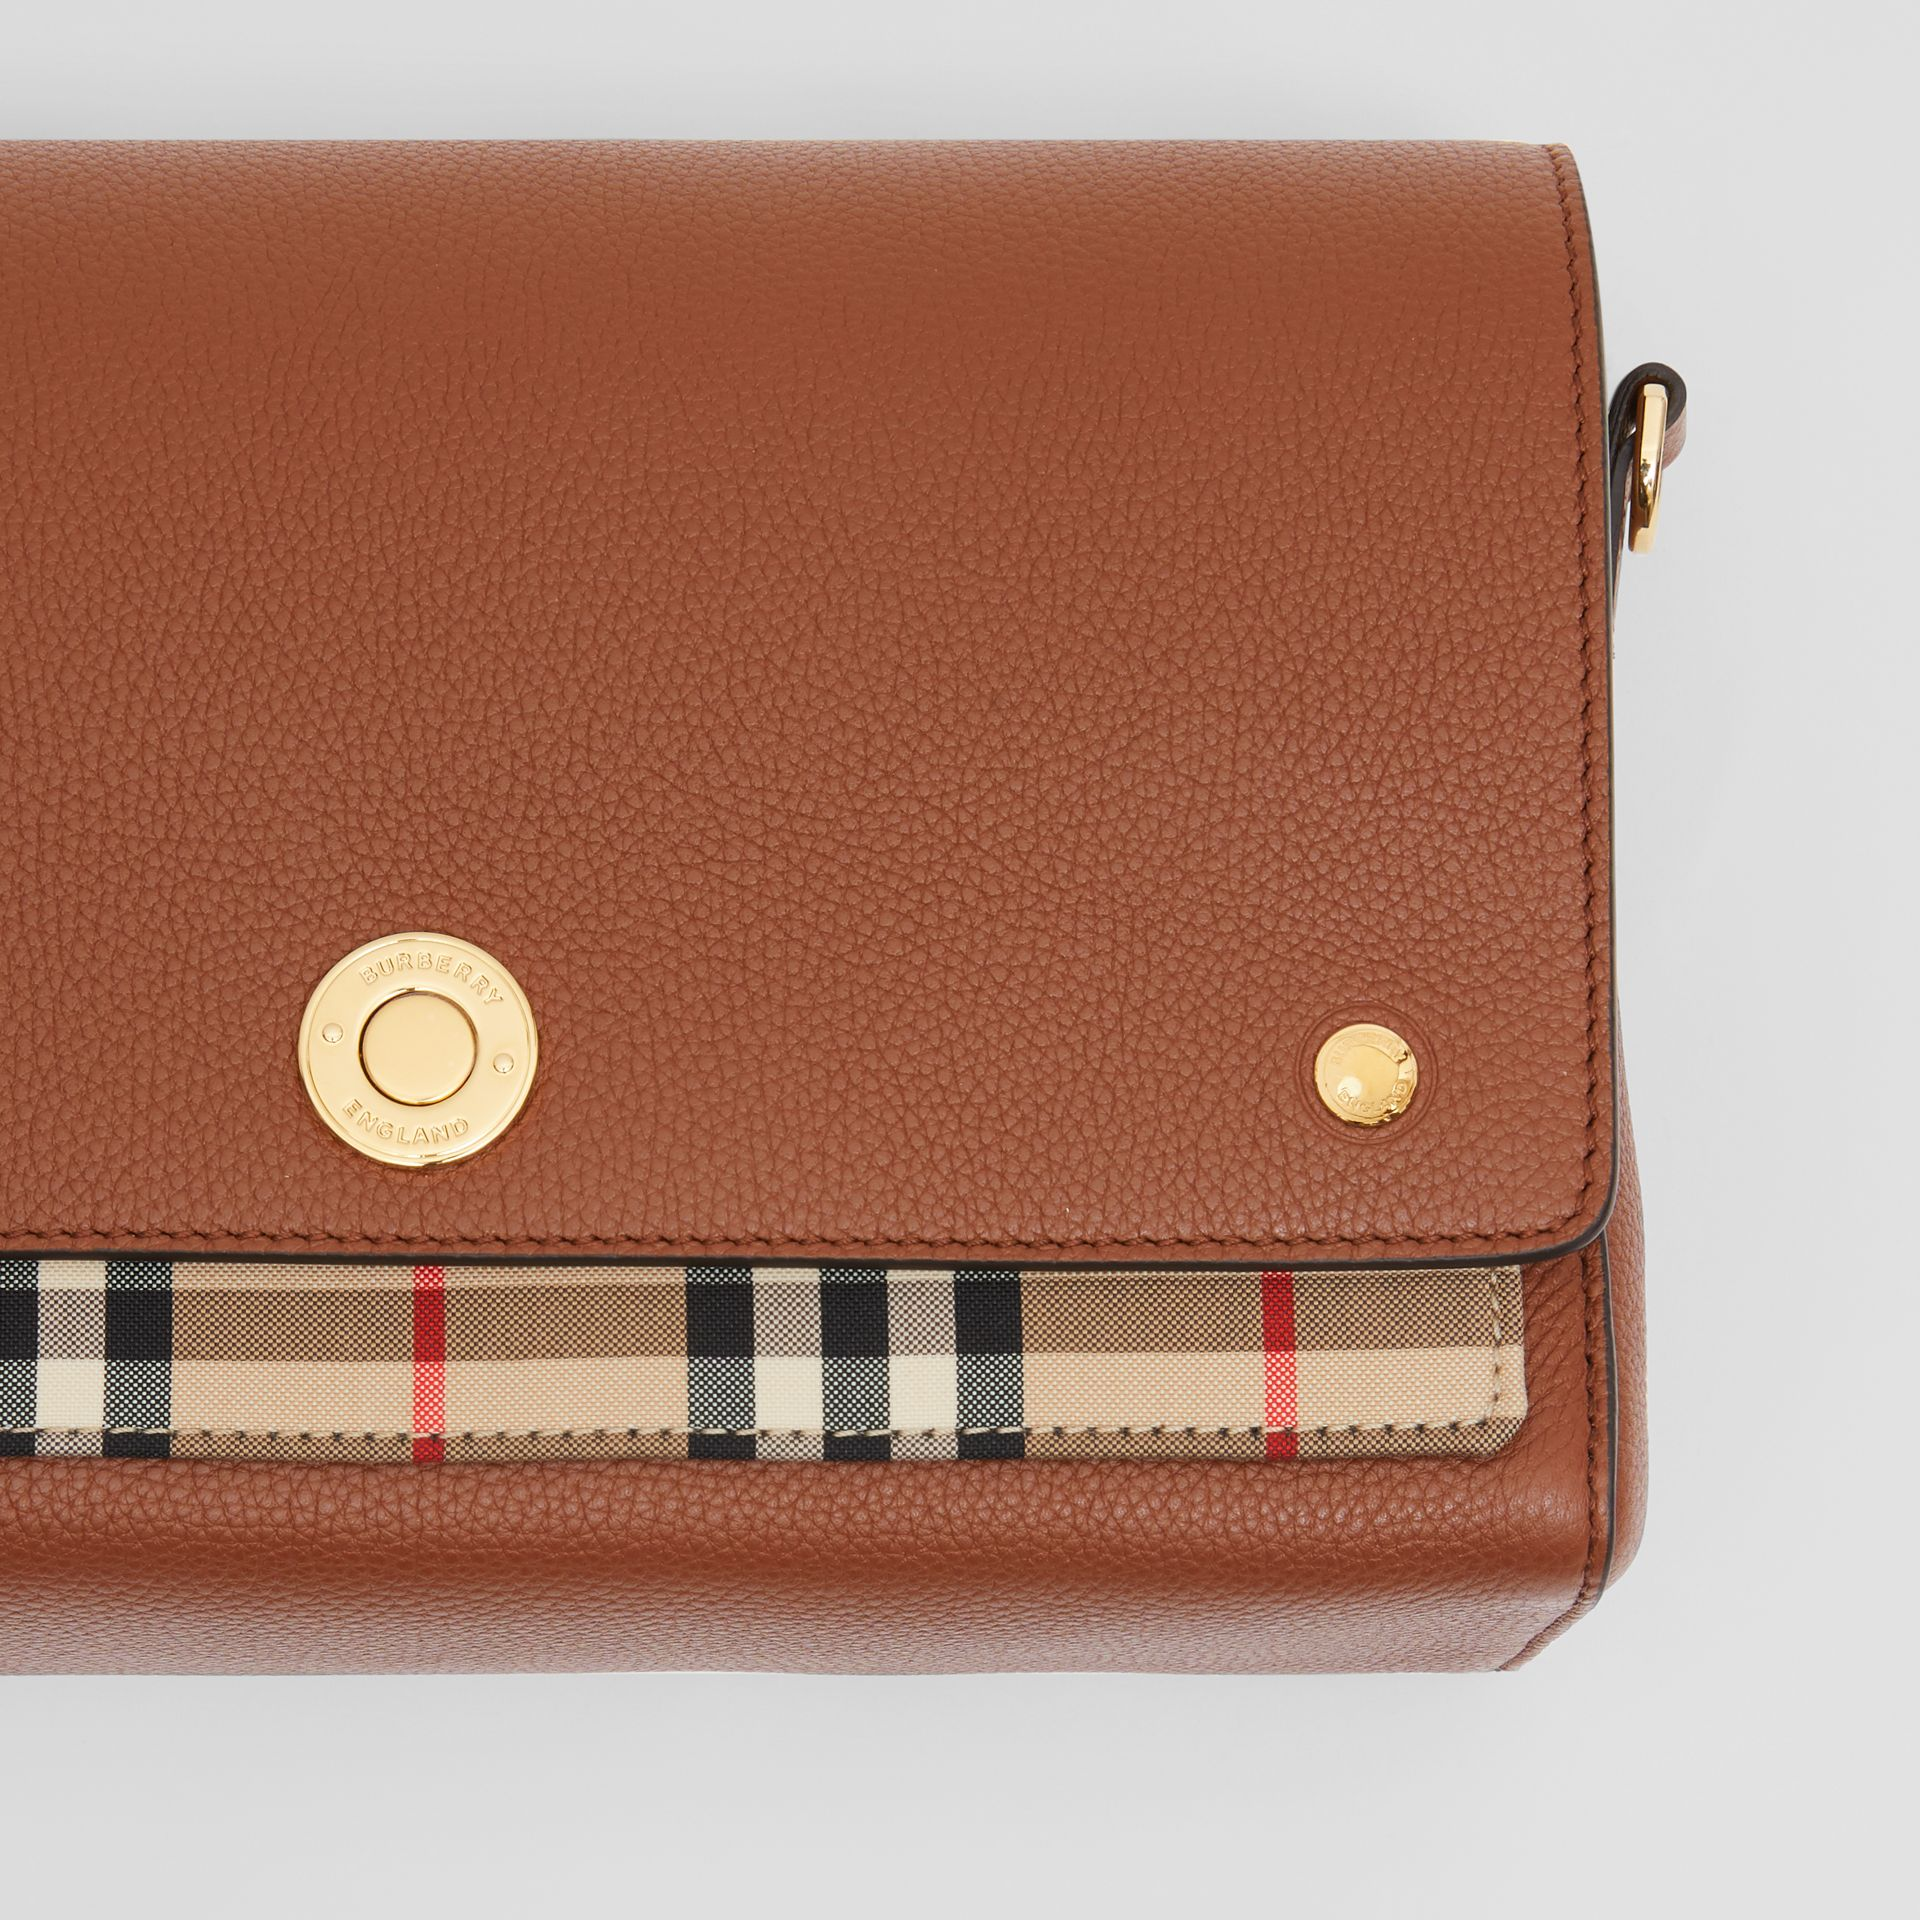 Leather and Vintage Check Note Crossbody Bag in Tan - Women | Burberry United Kingdom - gallery image 1